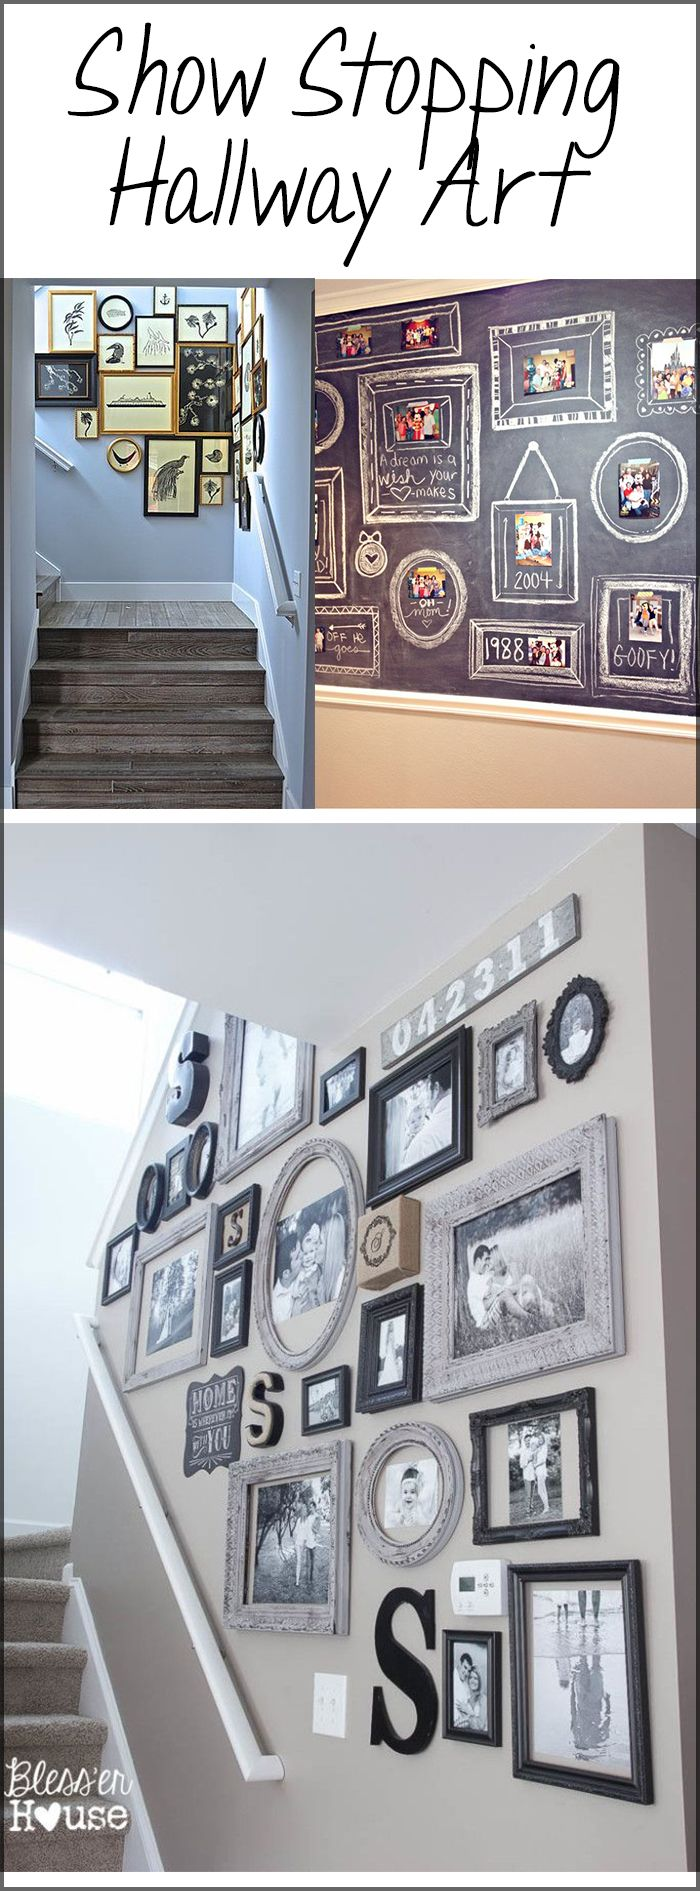 I would have never thought that chalkboard paint in the hallway would be a good idea! I love the idea of a timeline written on the chalkboard paint. Such a cute way to see how your family has grown...